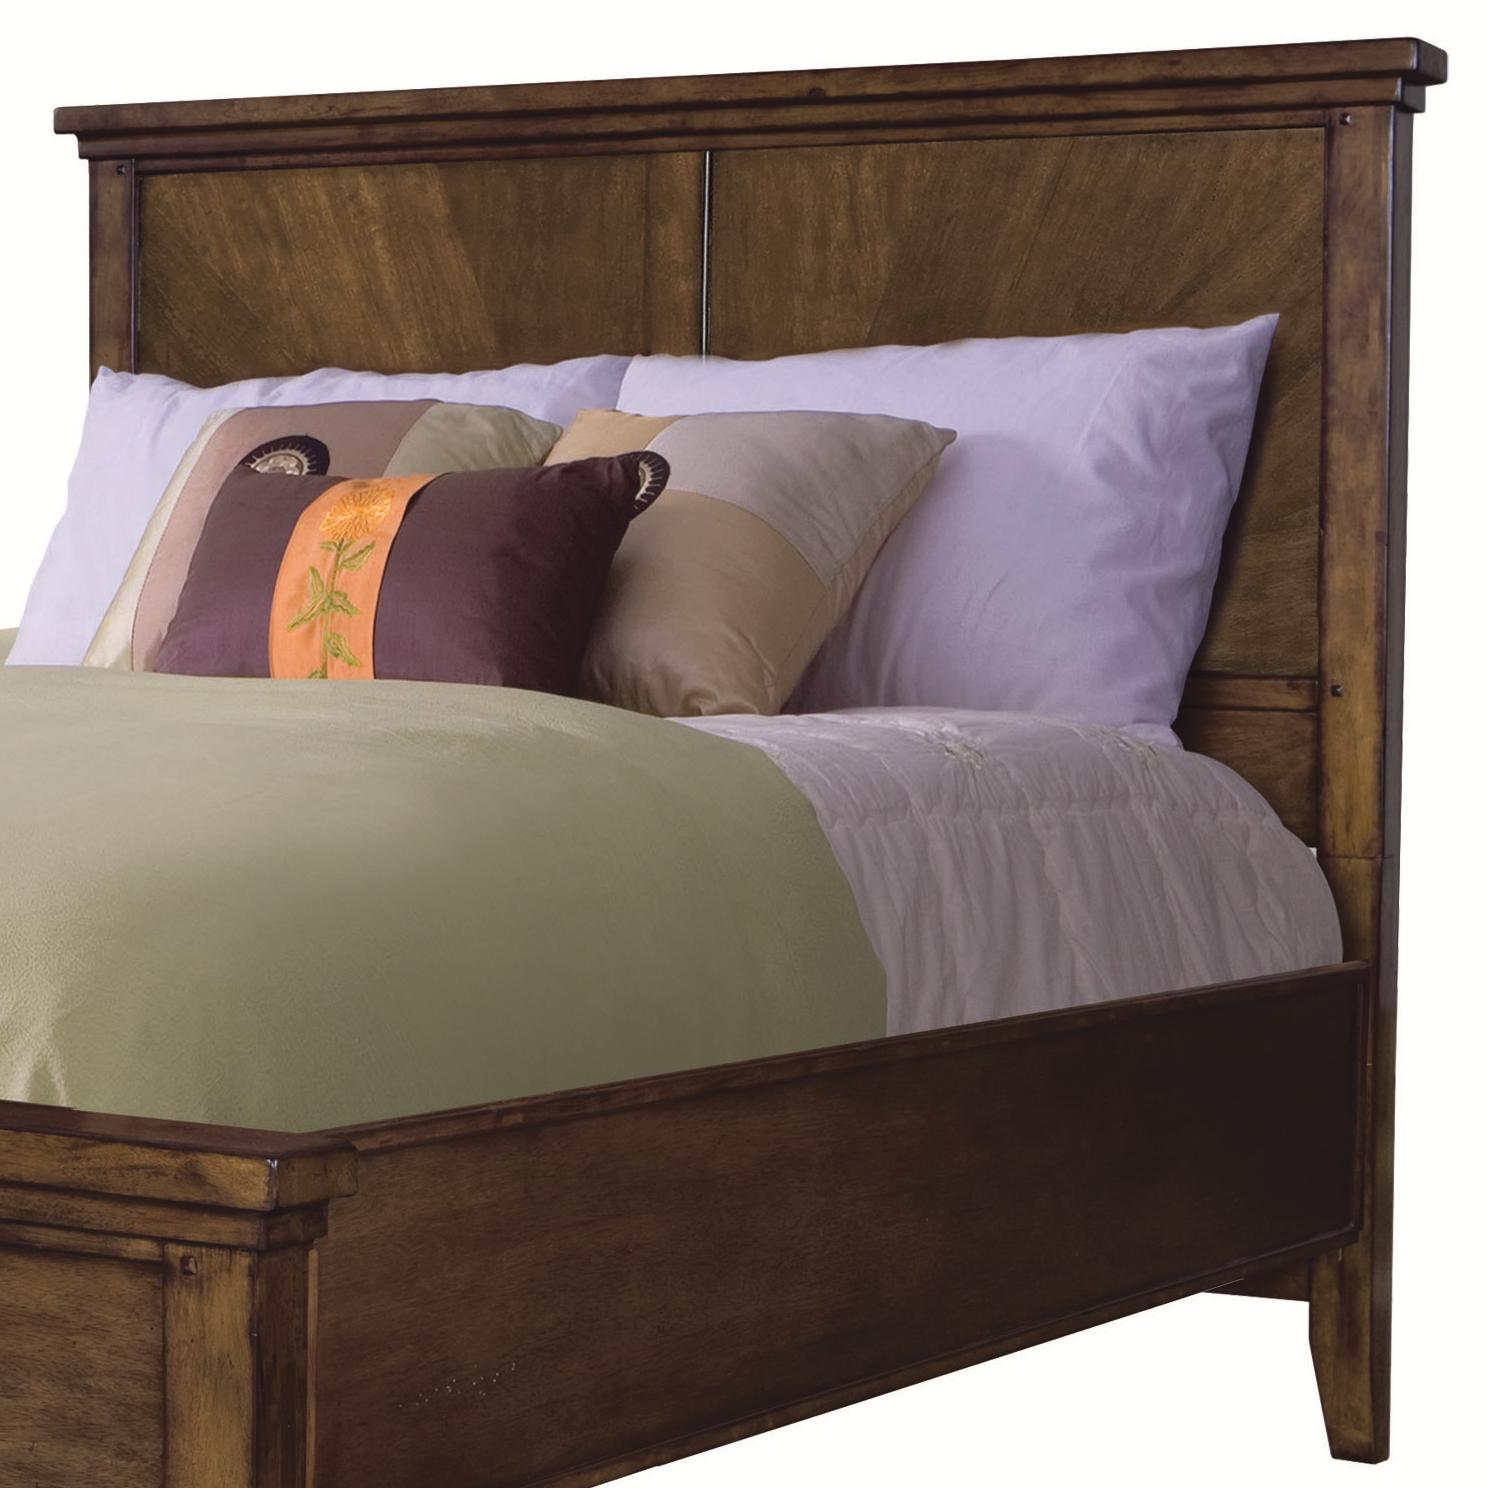 Aspenhome Cross Country King/Cal King Panel Headboard - Item Number: IMR-415